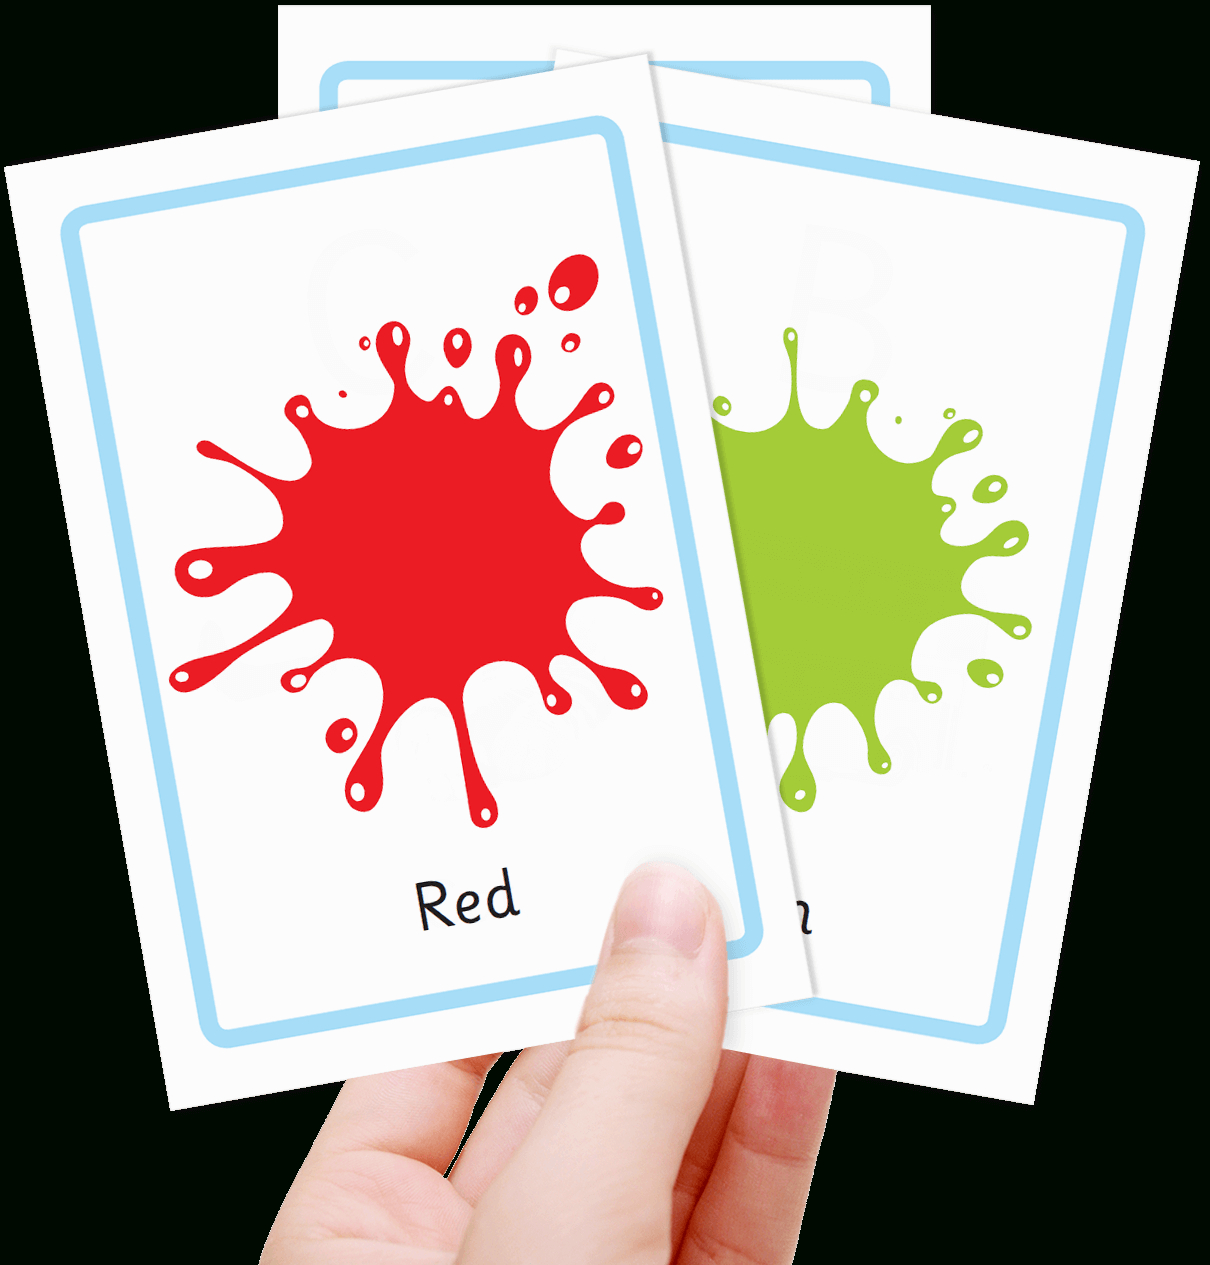 Free Colour Flashcards For Kids - Totcards - Color Flashcards Printable Free